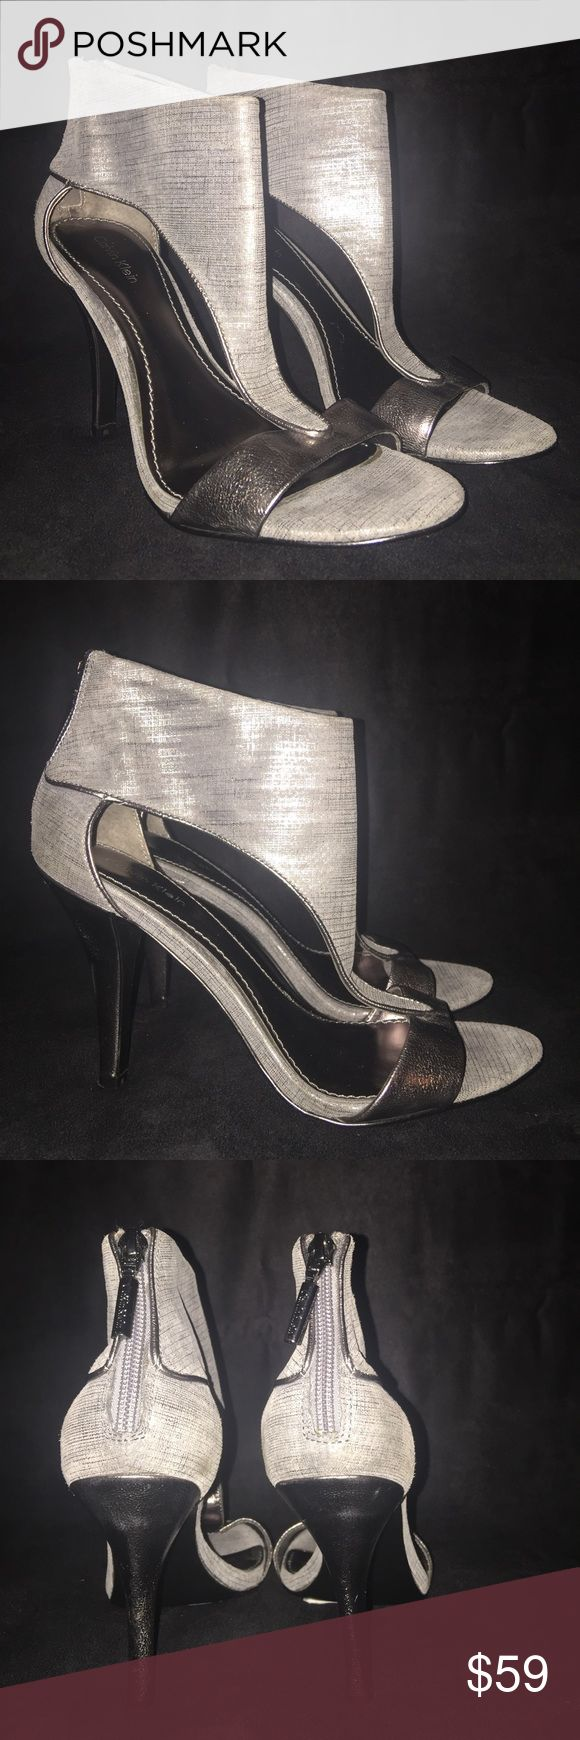 "CALVIN KLEIN T-Strap Pewter Sandal (9) NEW CALVIN KLEIN T-Strap Pewter Sandal (9) NEW NO Box (Retail: $119)  *4"" heel *Back zip closure *Pewter metallic covered heel, toe strap and trim Calvin Klein Shoes Heels"